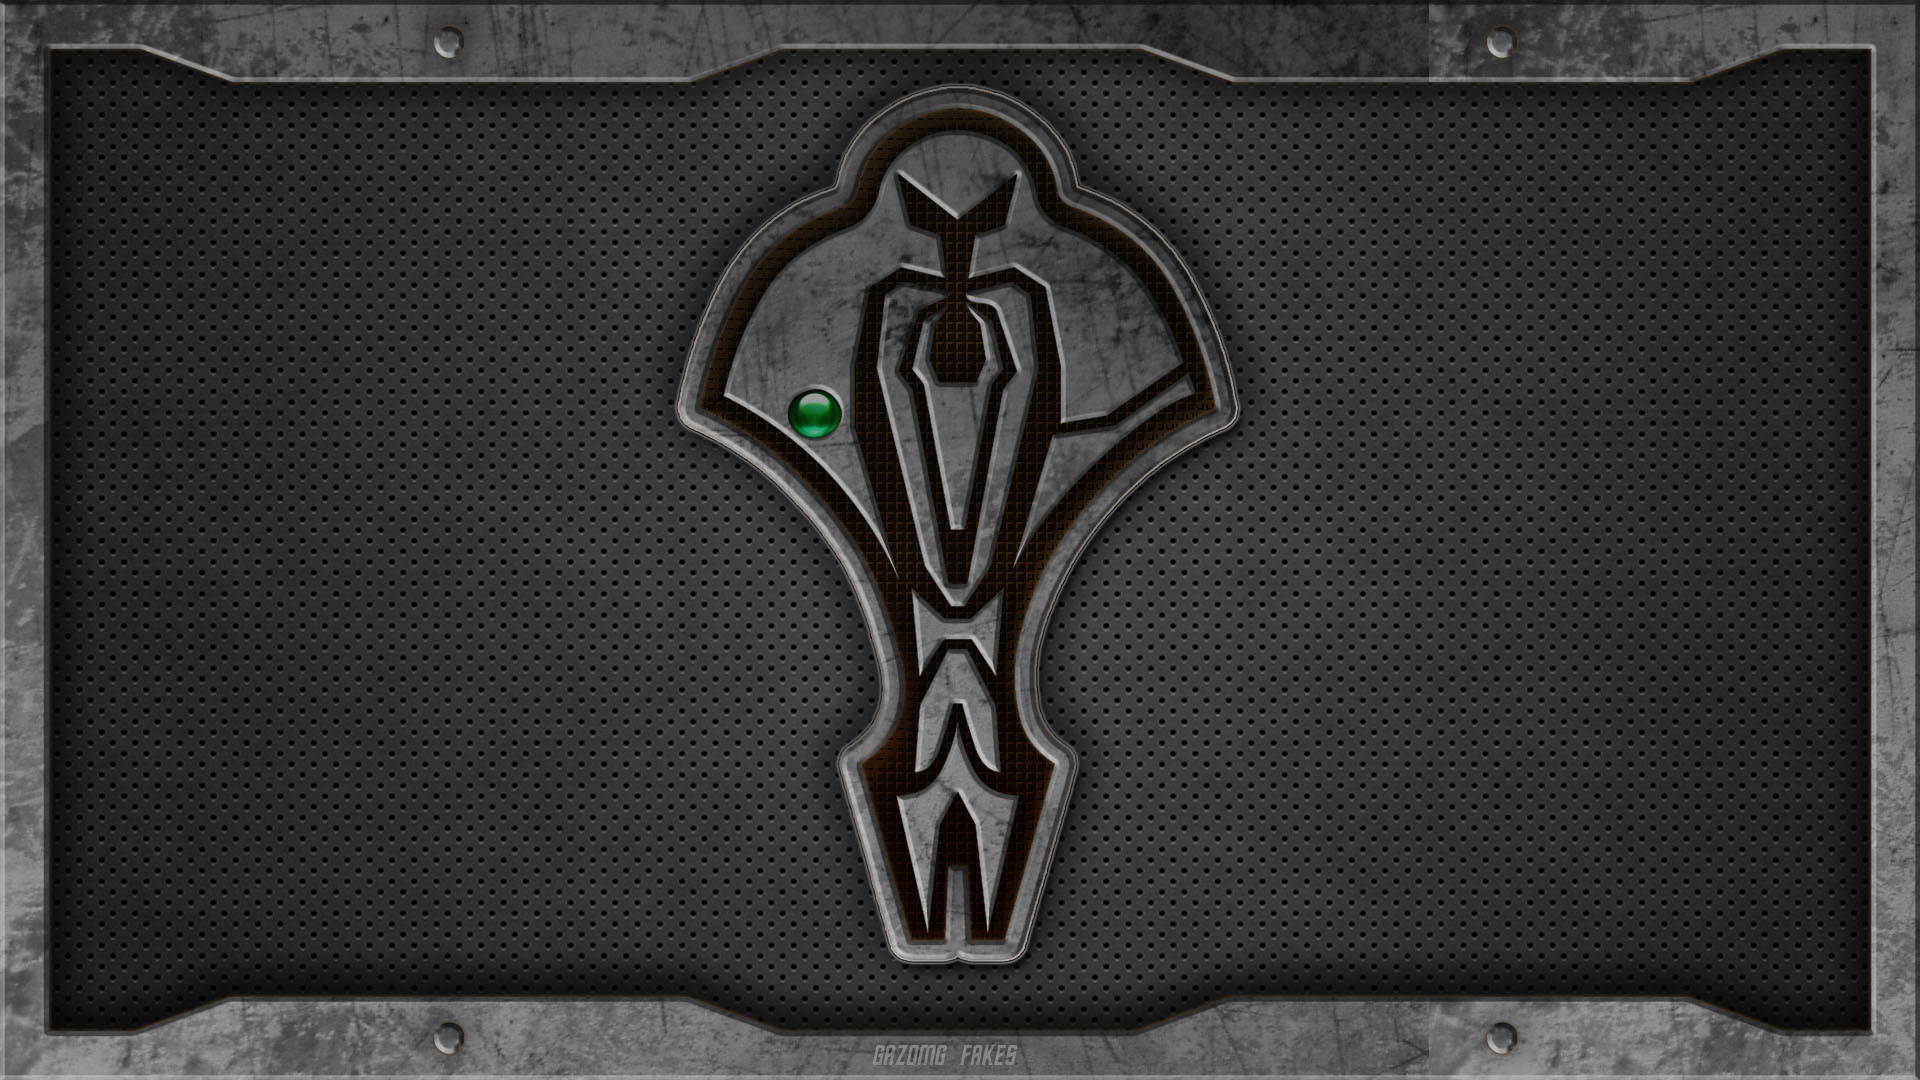 Res: 1920x1080, Star Trek Cardassian Logo Wallpaper by gazomg on DeviantArt